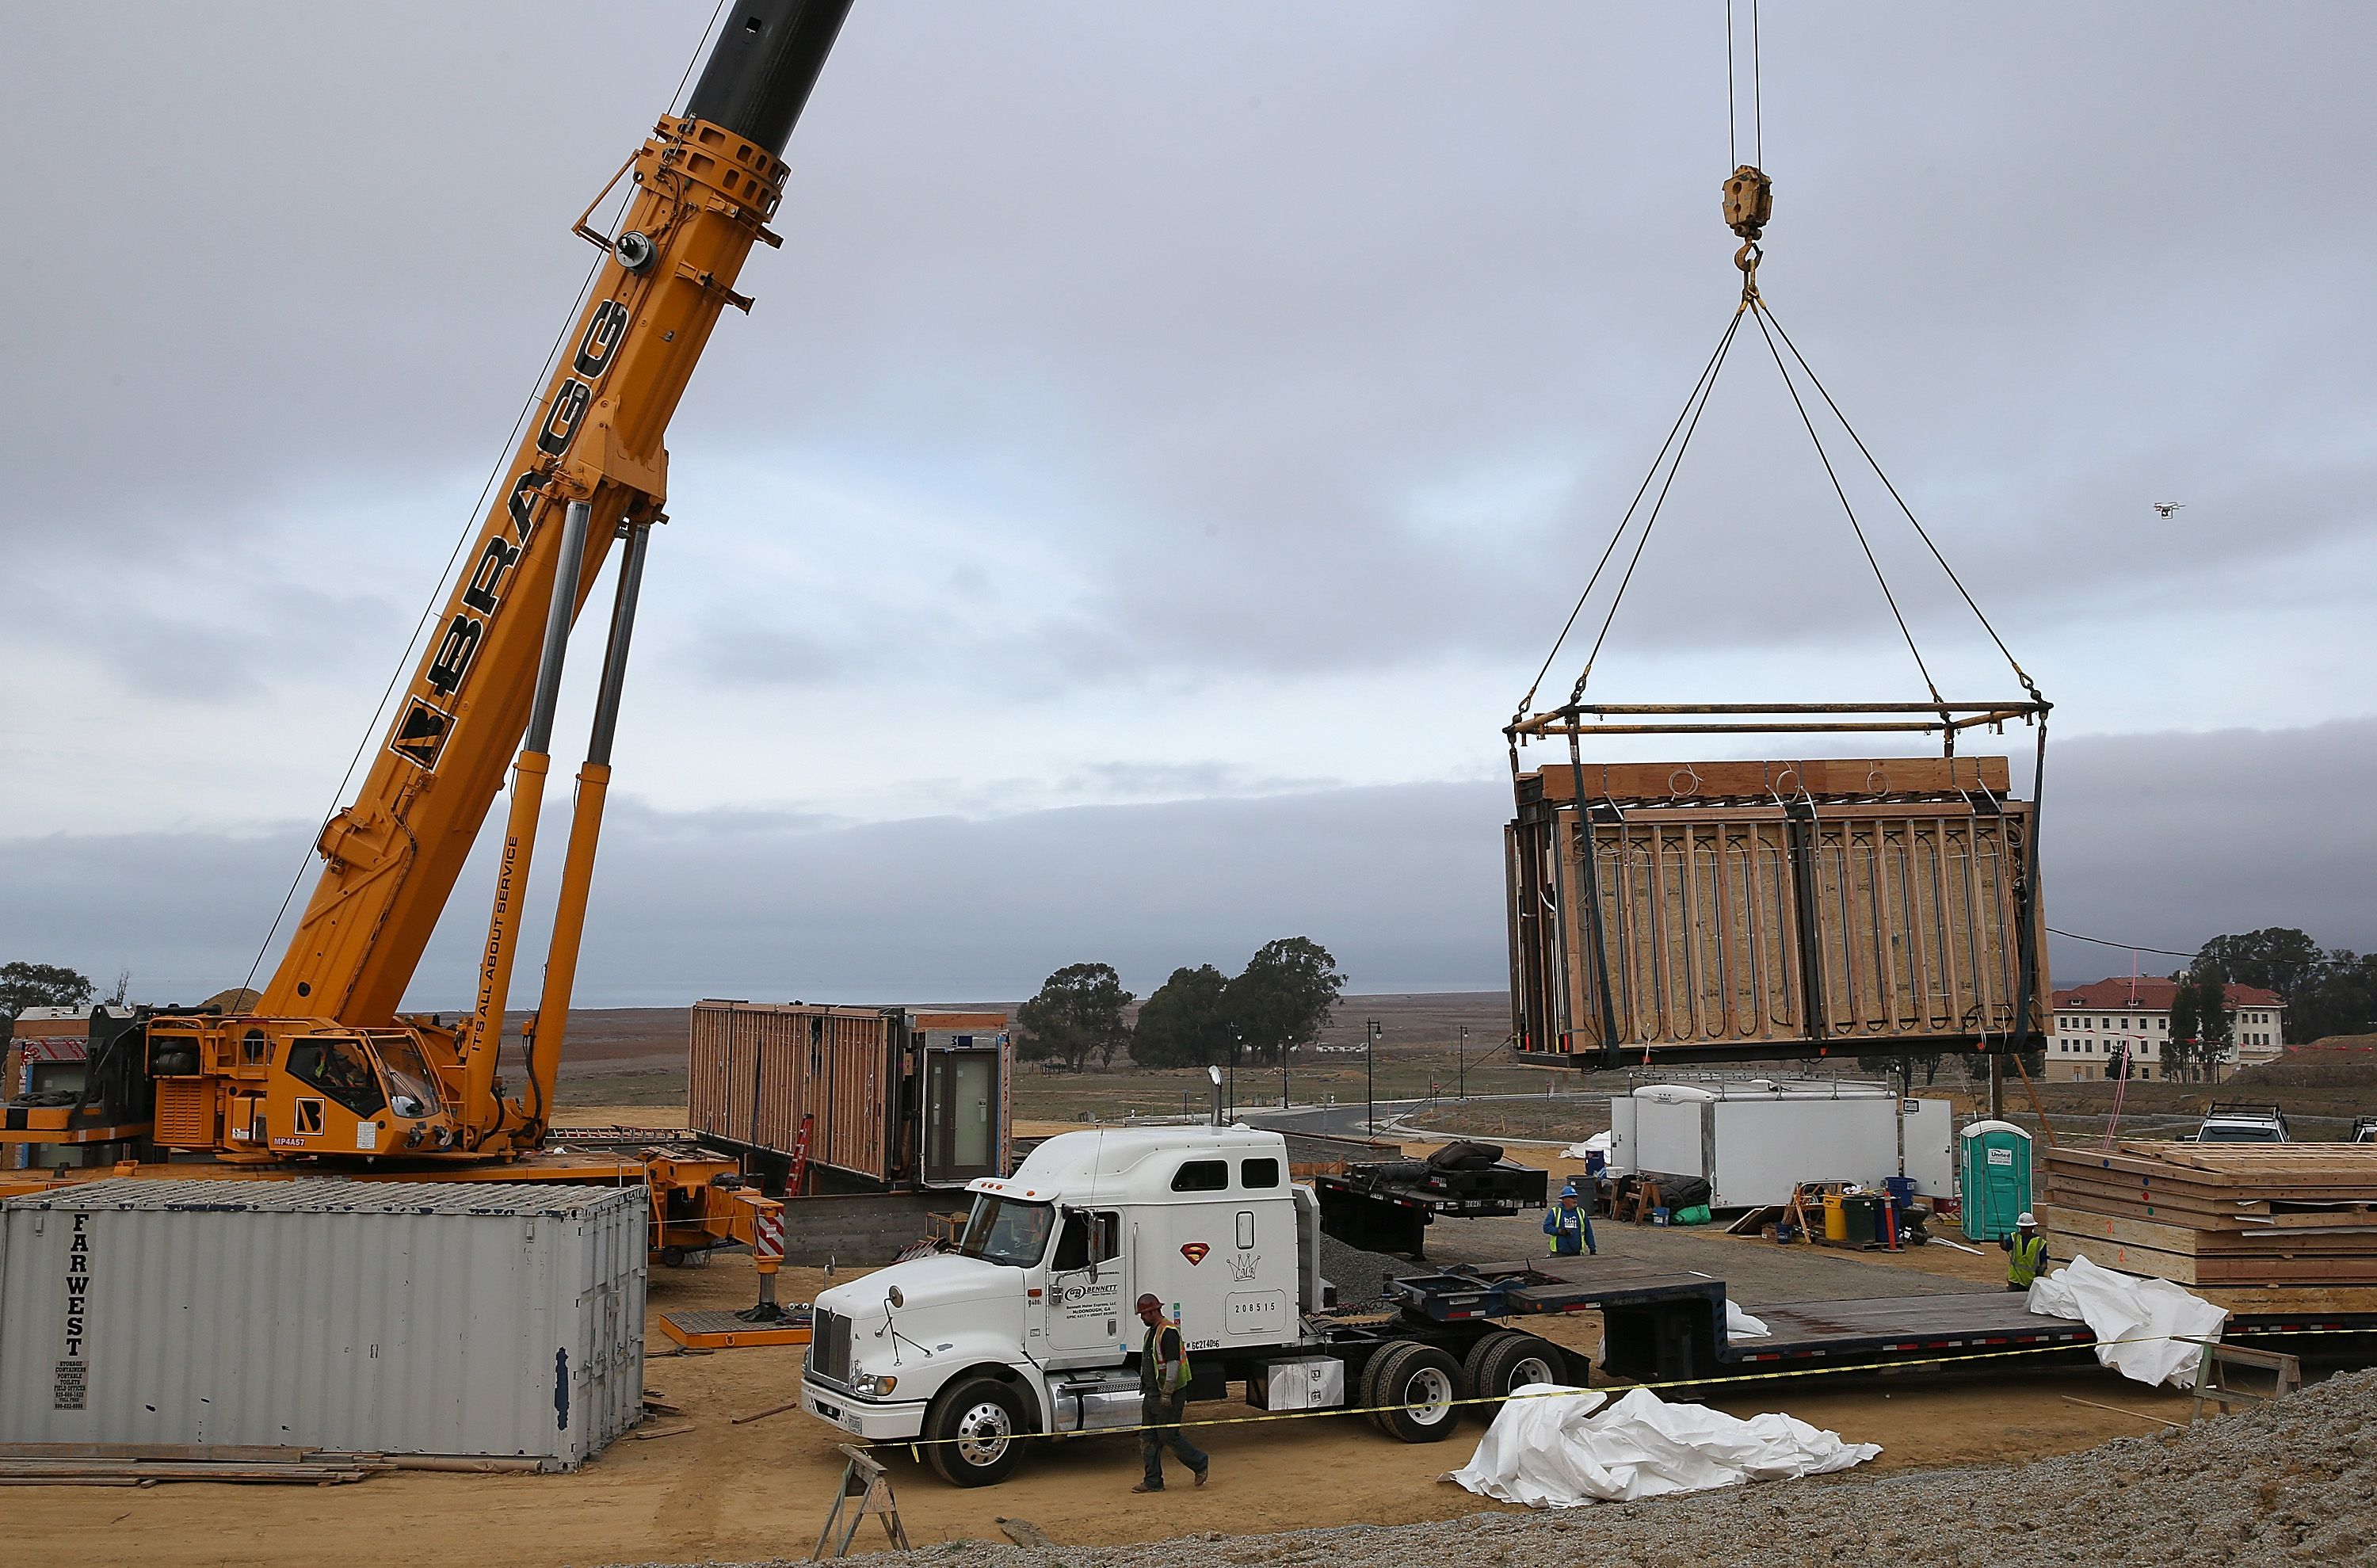 The Breezehouse being constructed. A crane lifts a section of a Blu Homes pre-fab modular home, 2014, California